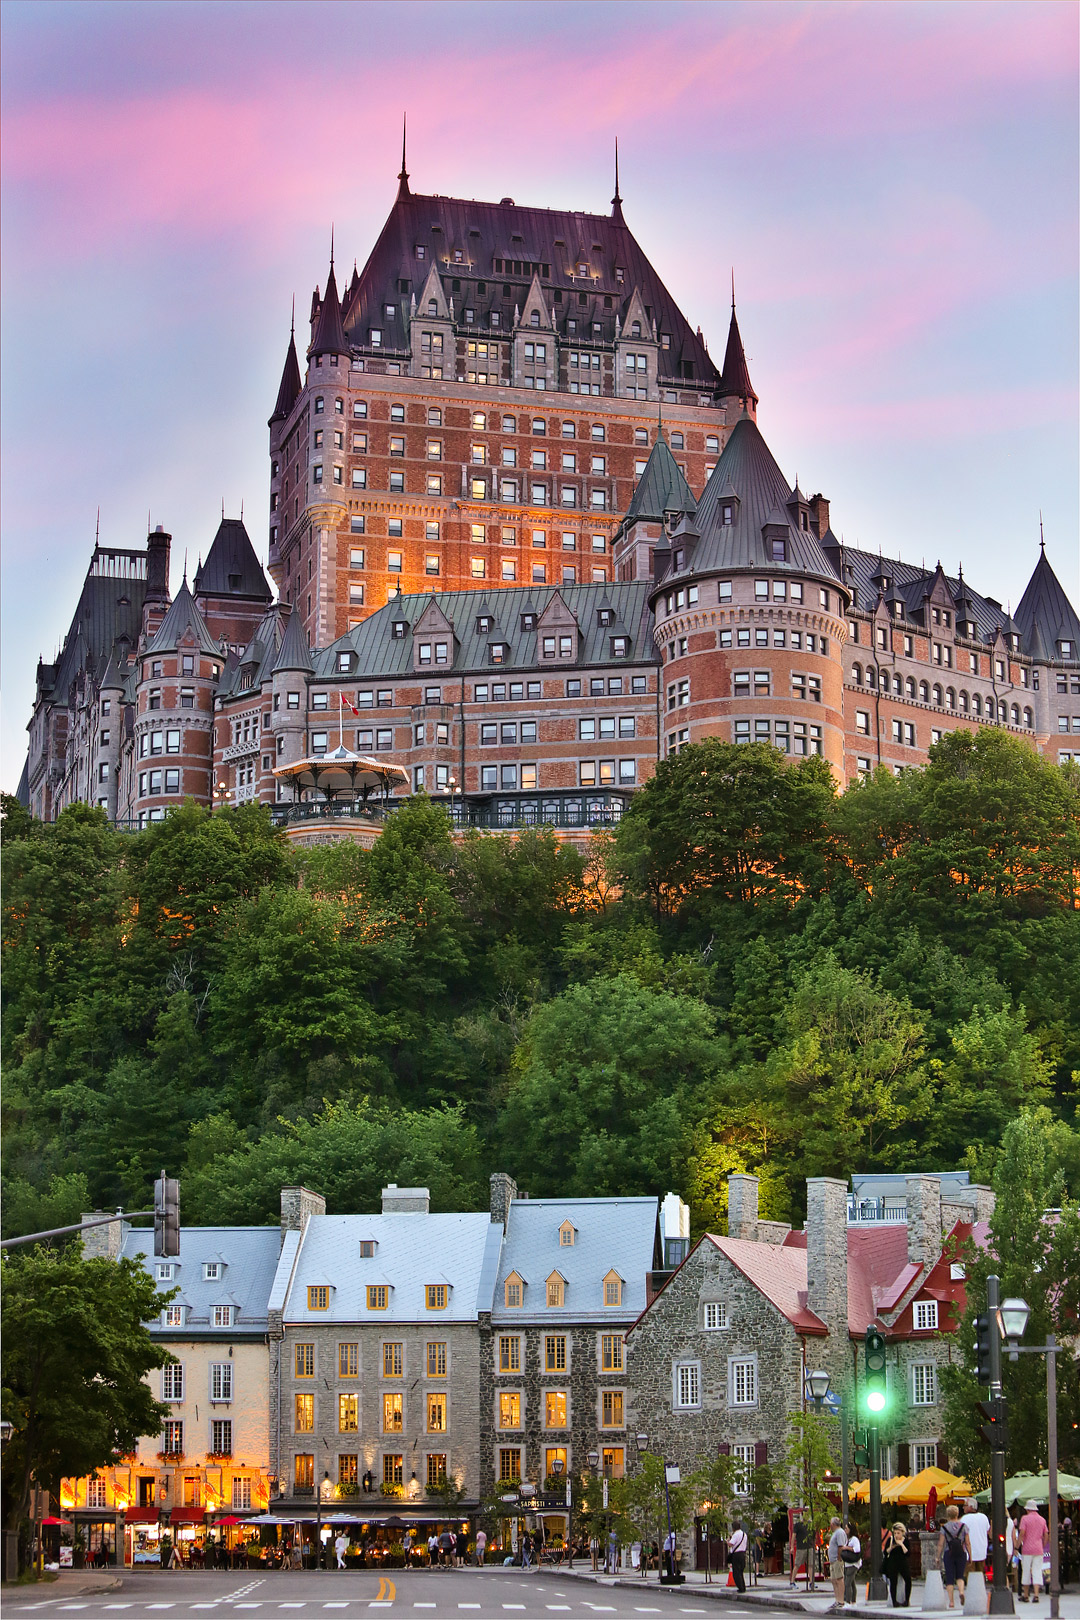 Looking for the best things to do in quebec city? Save this pin and click to see our blog post. It includes what to see in quebec city, where to visit to learn more about quebec city history, what you can't miss in old quebec, where to stay in quebec city, and more. Use this quebec city travel guide to make the most of your trip. // Local Adventurer #quebec #quebeccity #canada #travel